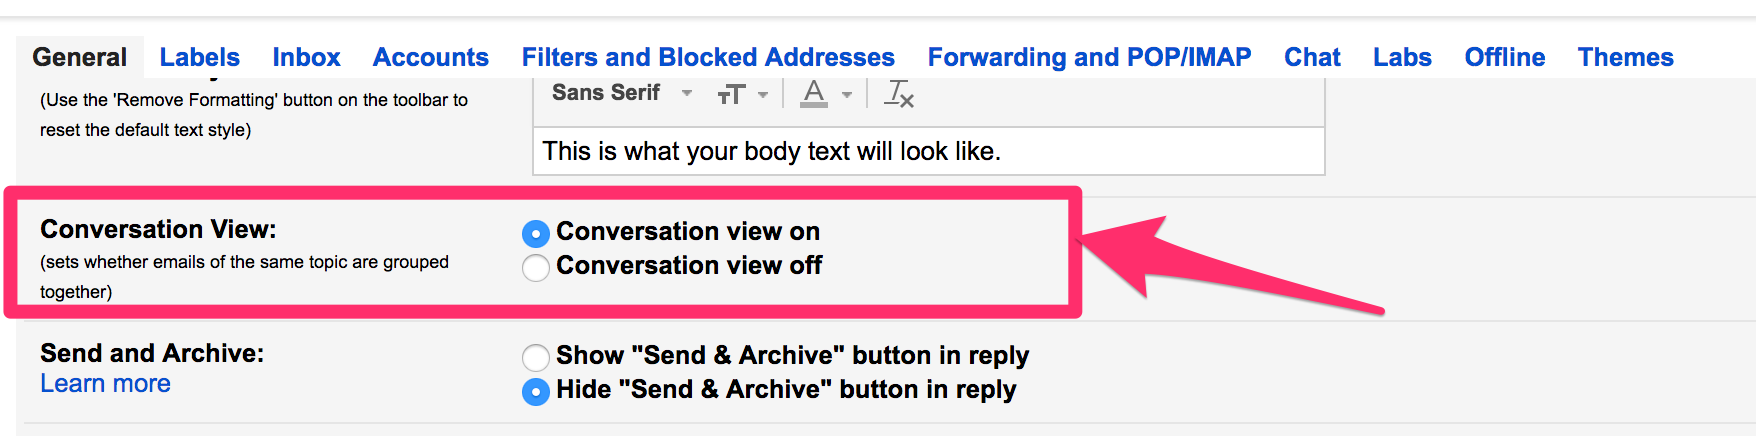 How to turn Gmail thread conversation view ON or OFF